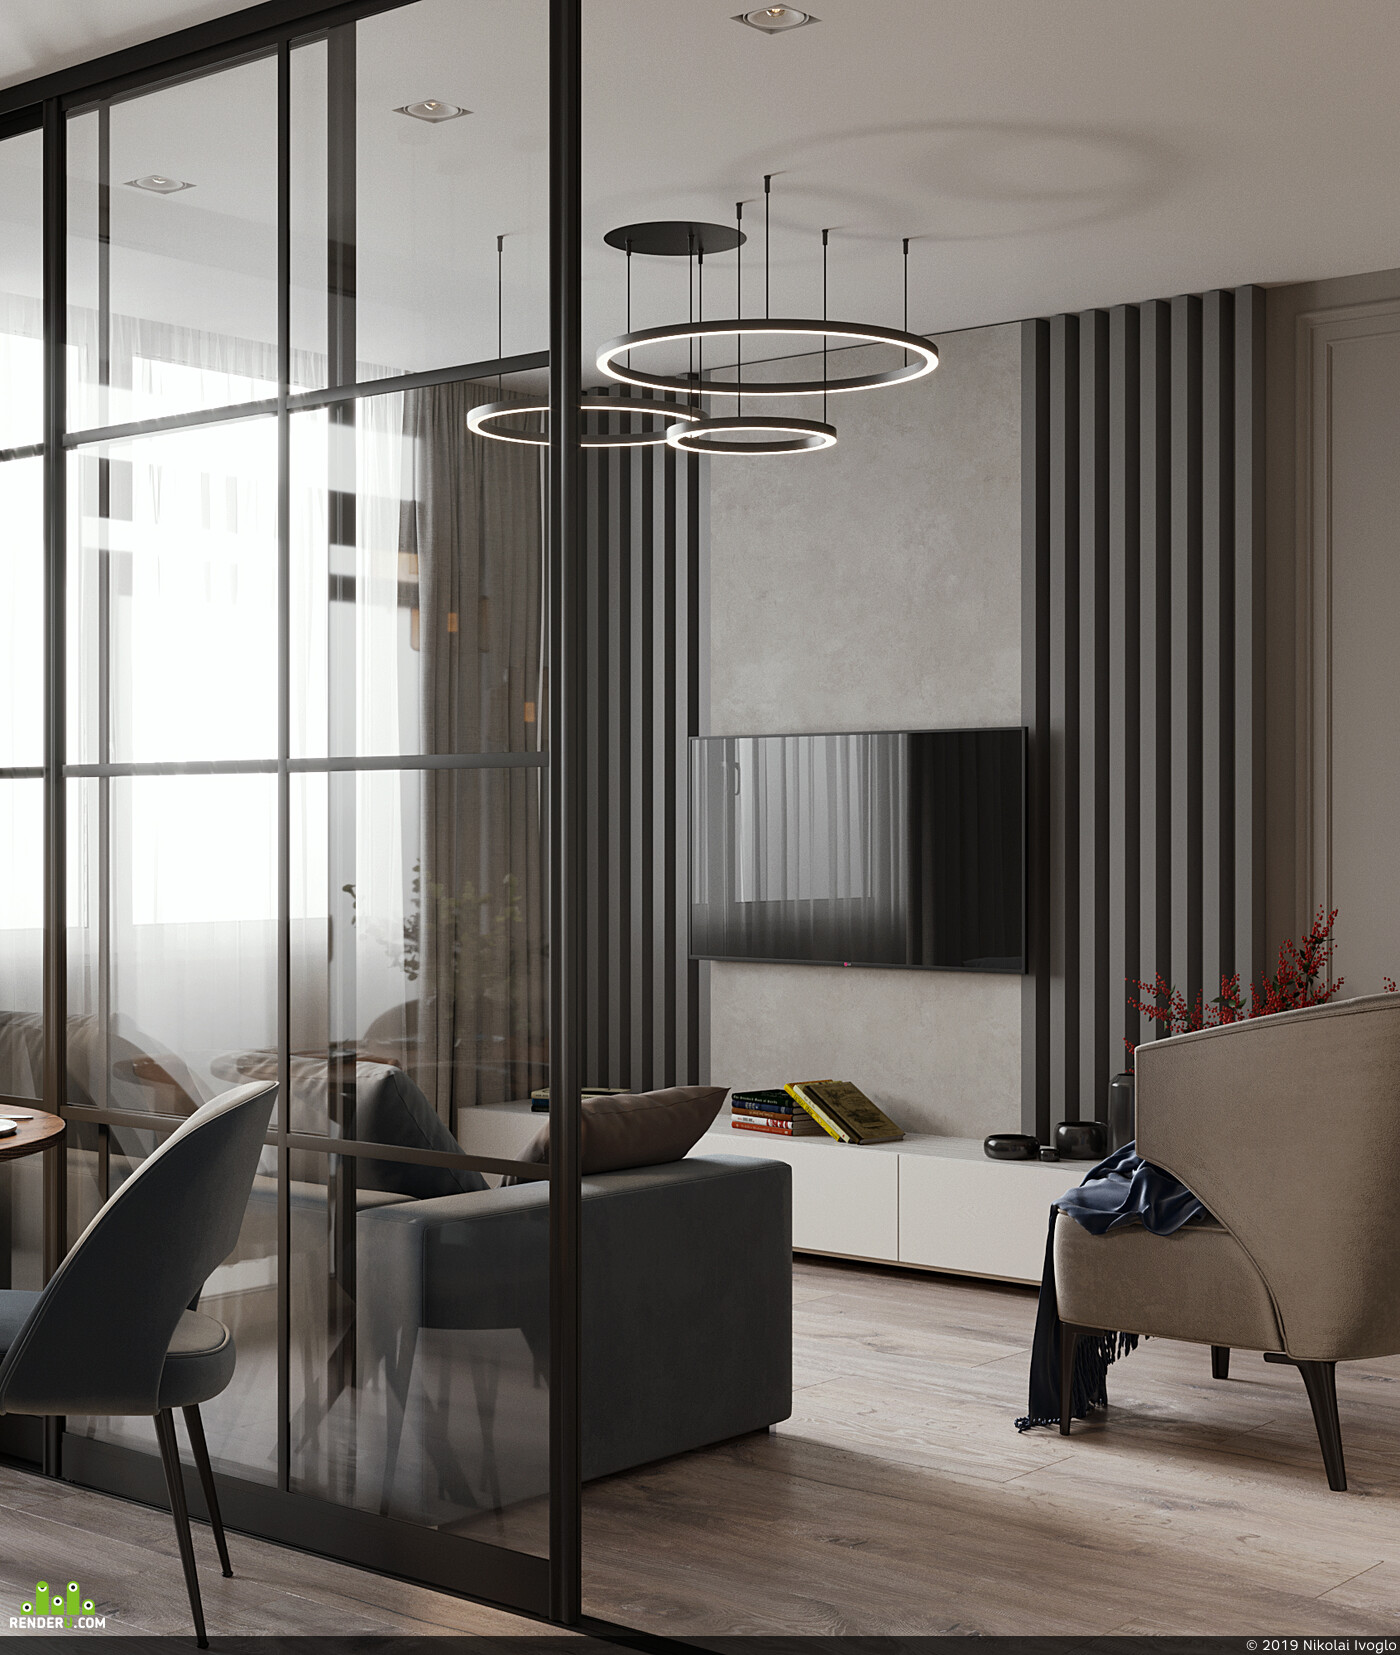 interiordesign, 3ds Max, 3D visualization,, CG, modern style